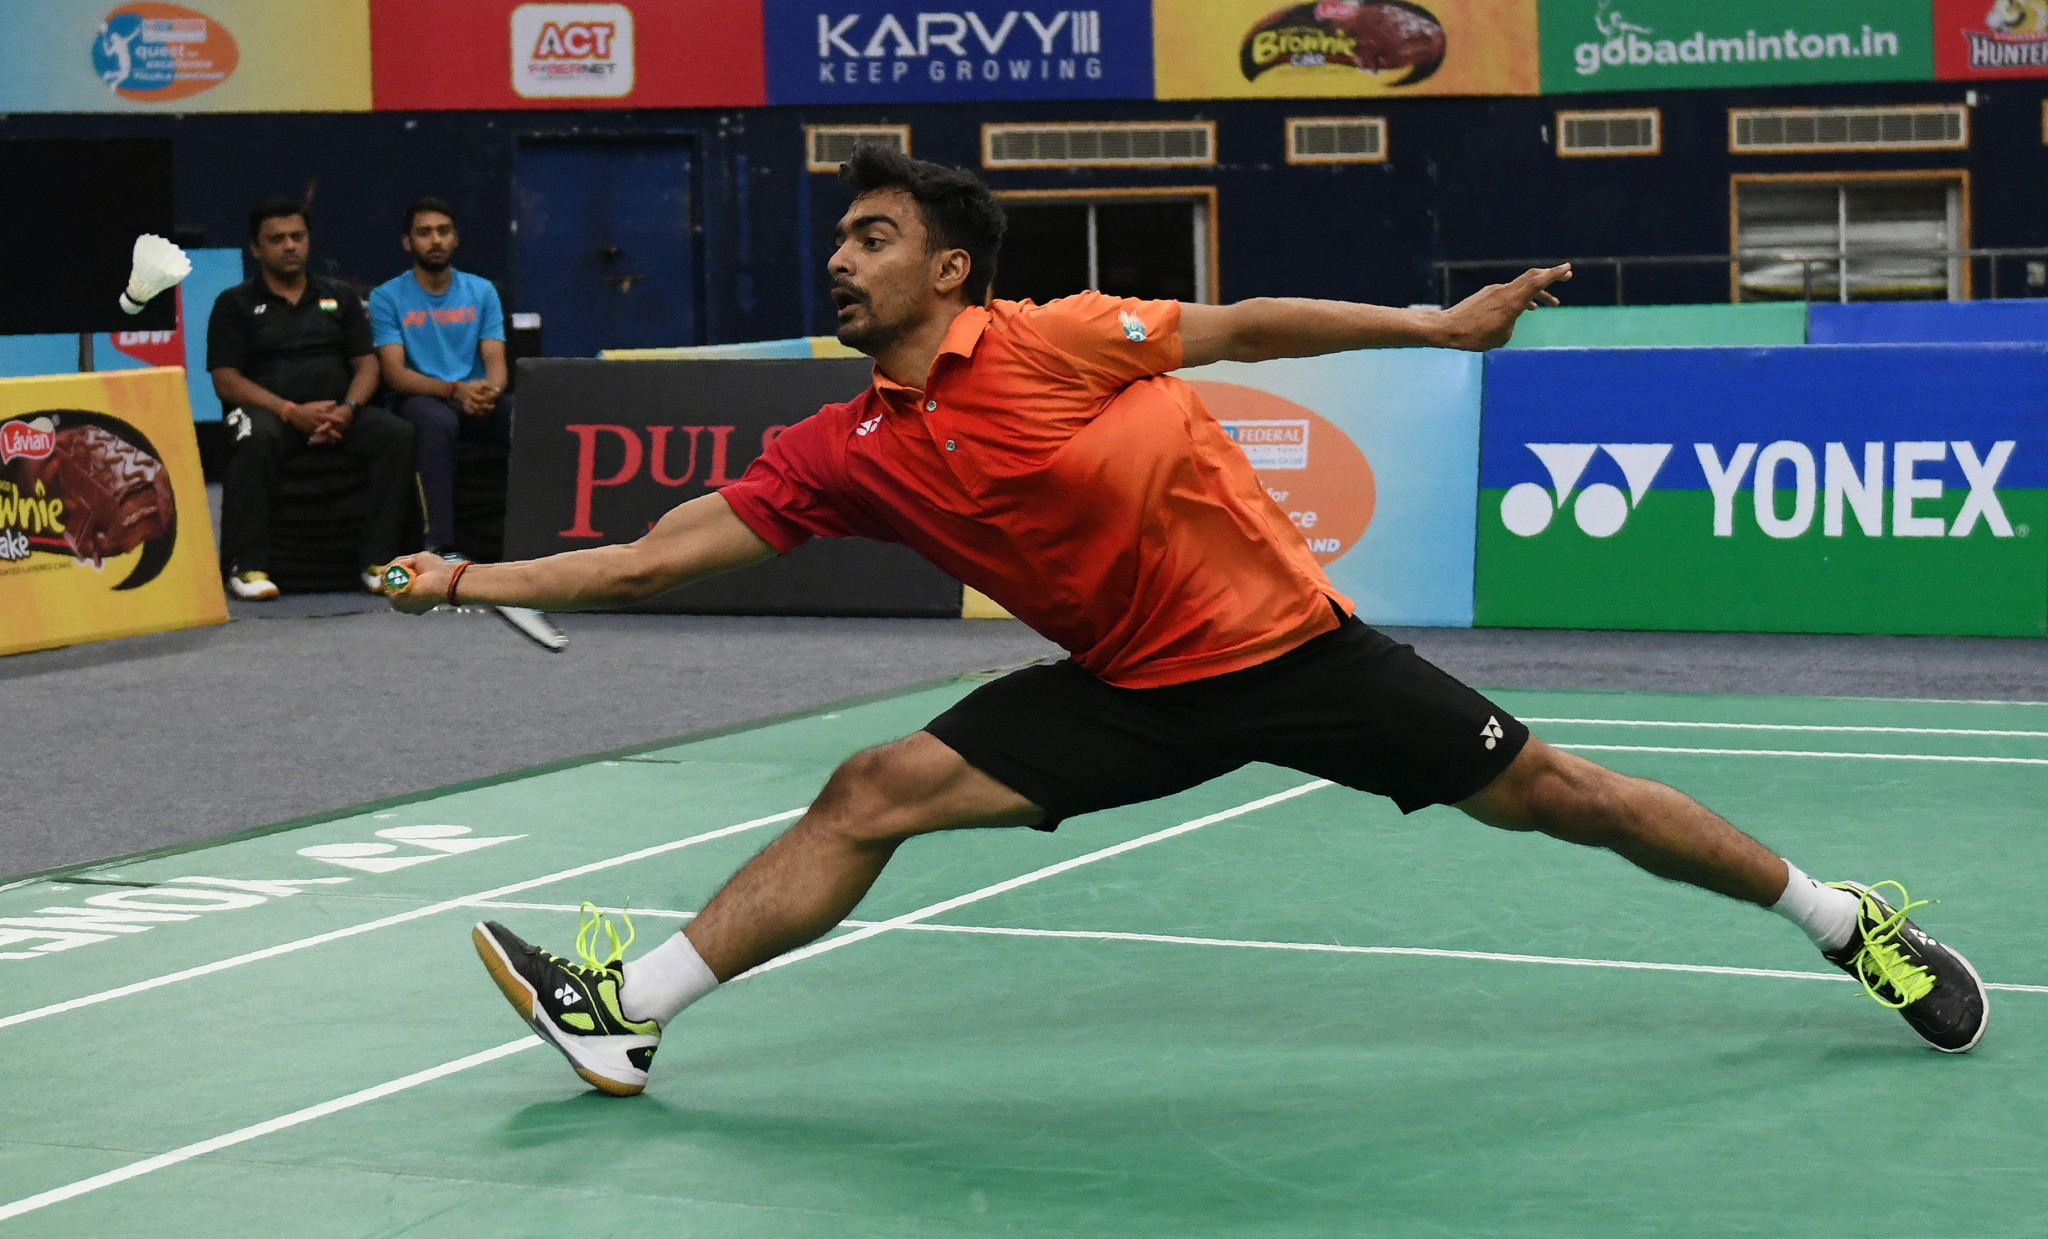 Sameer Verma will be hoping for home support to carry him through as the highest seed left in the men's single's competition ©Getty Images